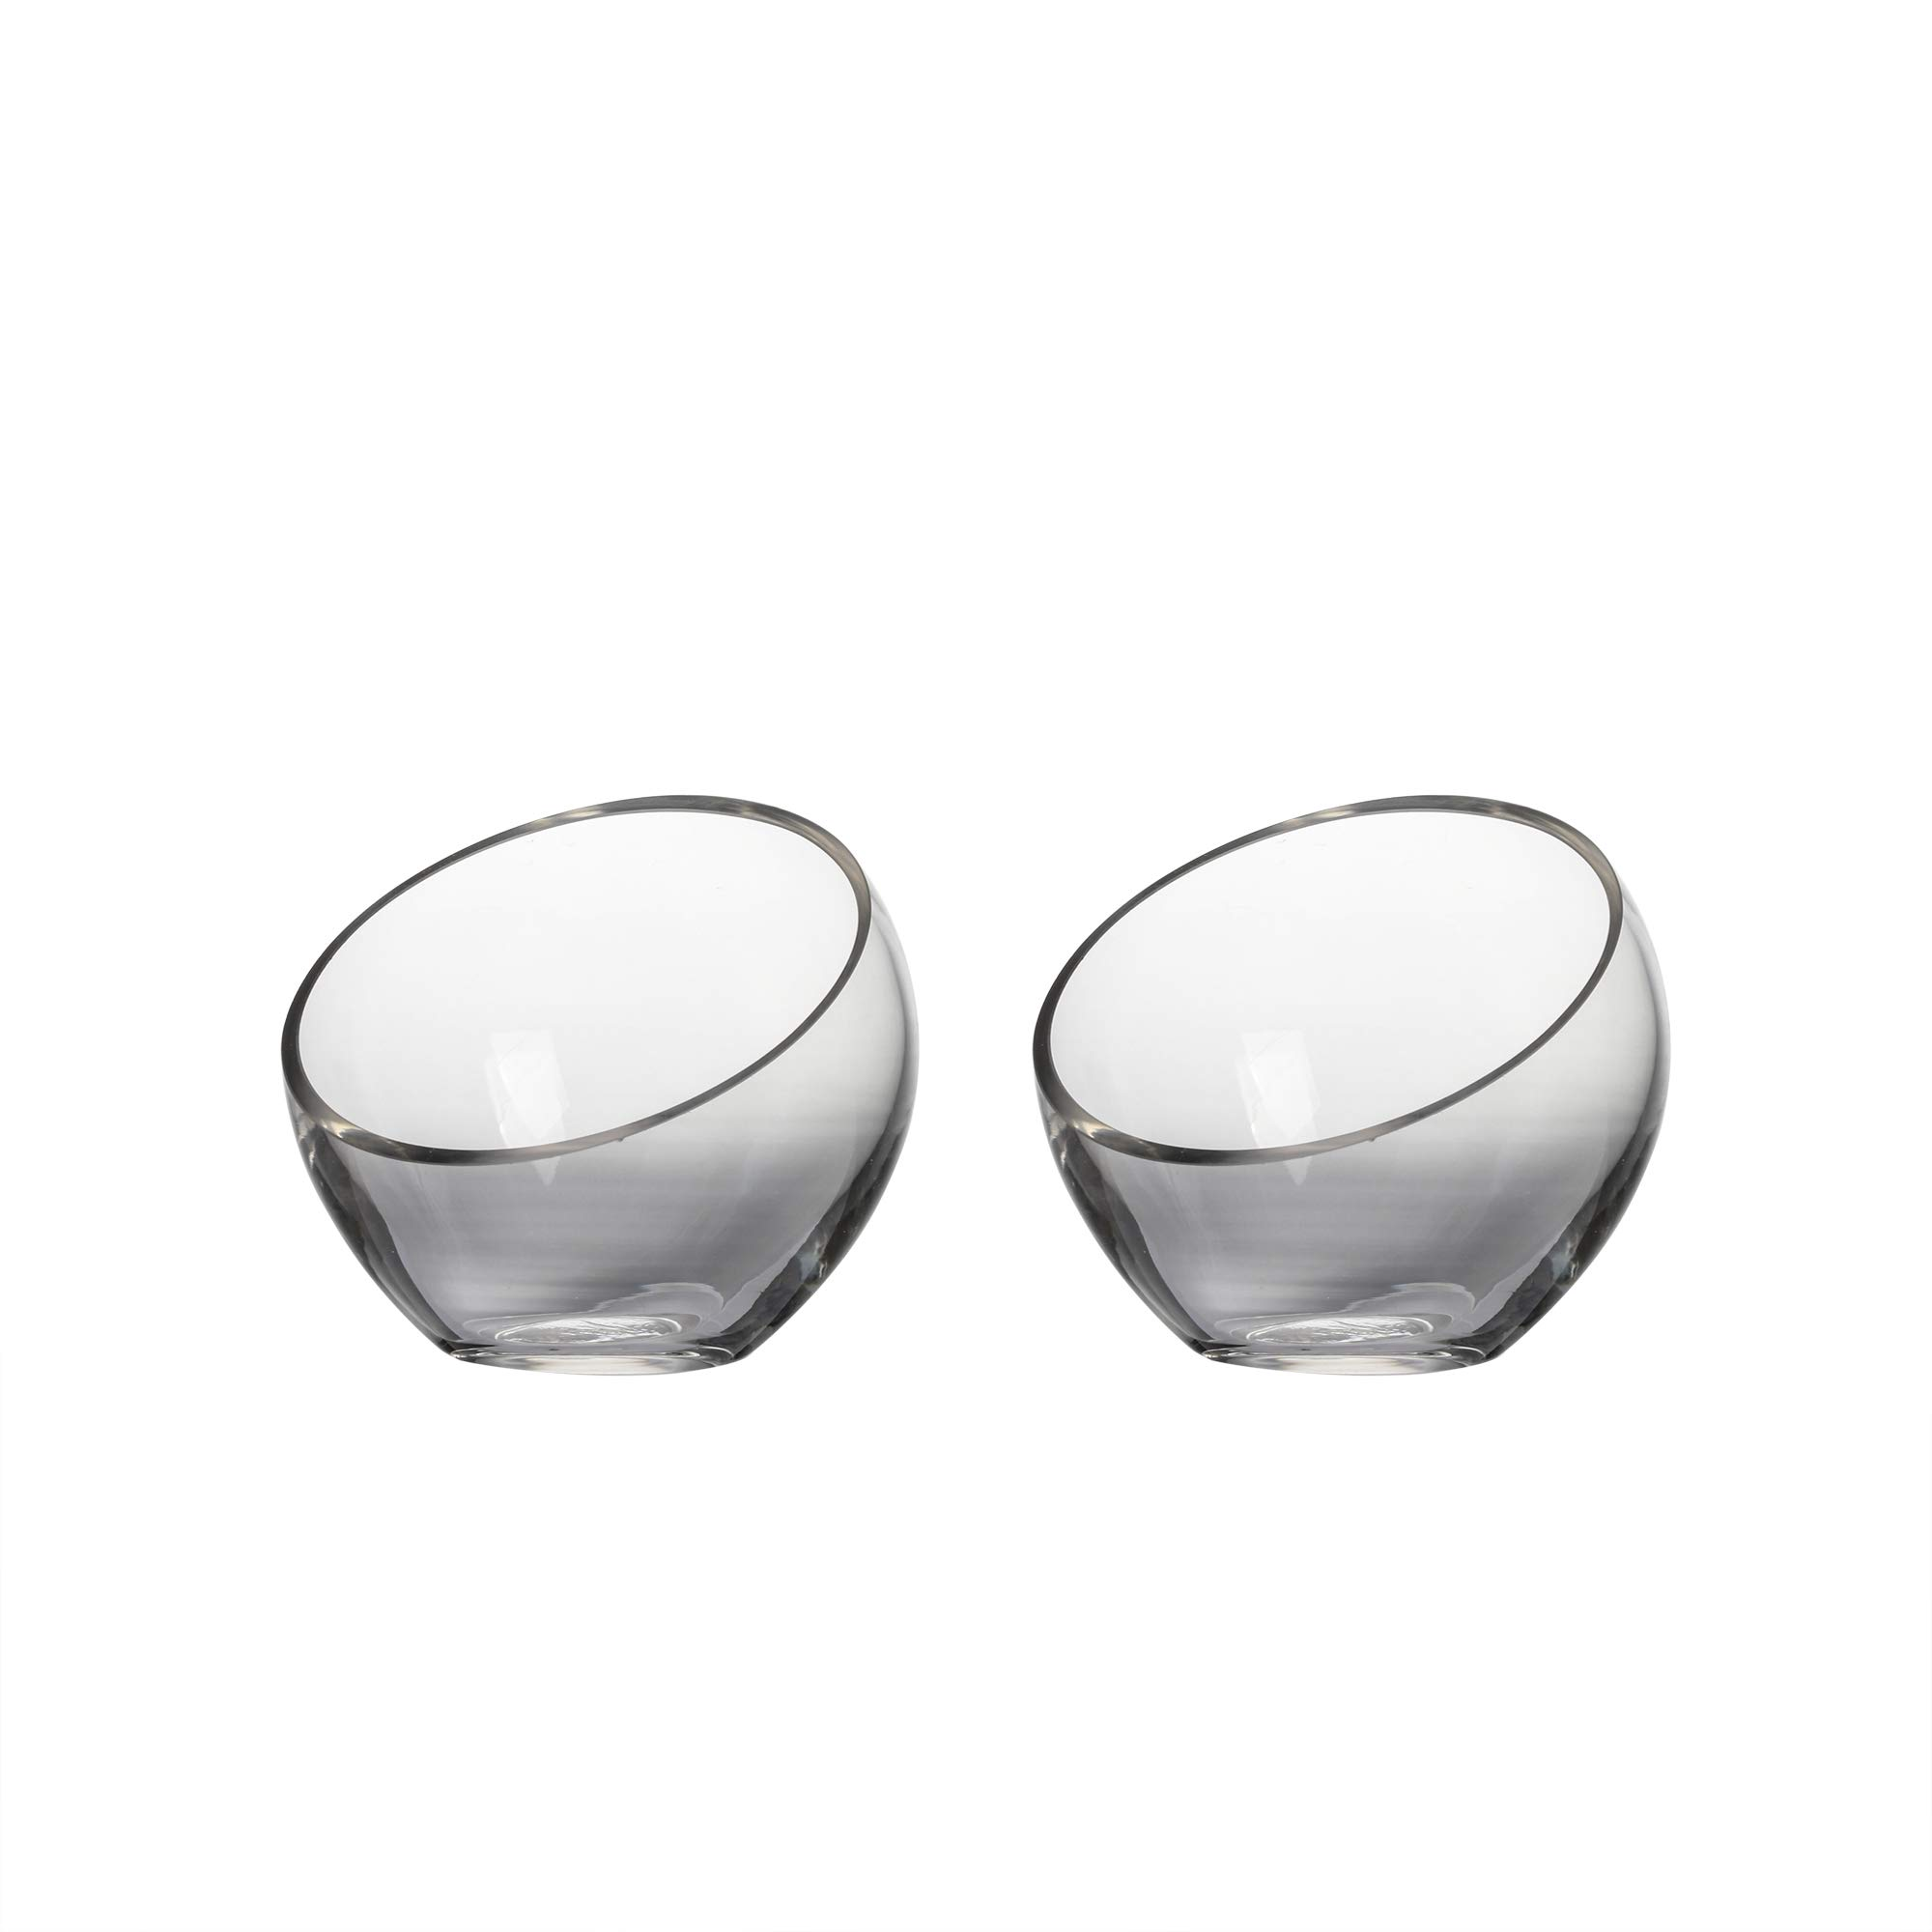 Whole Housewares Handmade Clear Glass Globe Bowl with Slanted Opening Set of 2 Dia 5.9 inch Succulent Terrarium